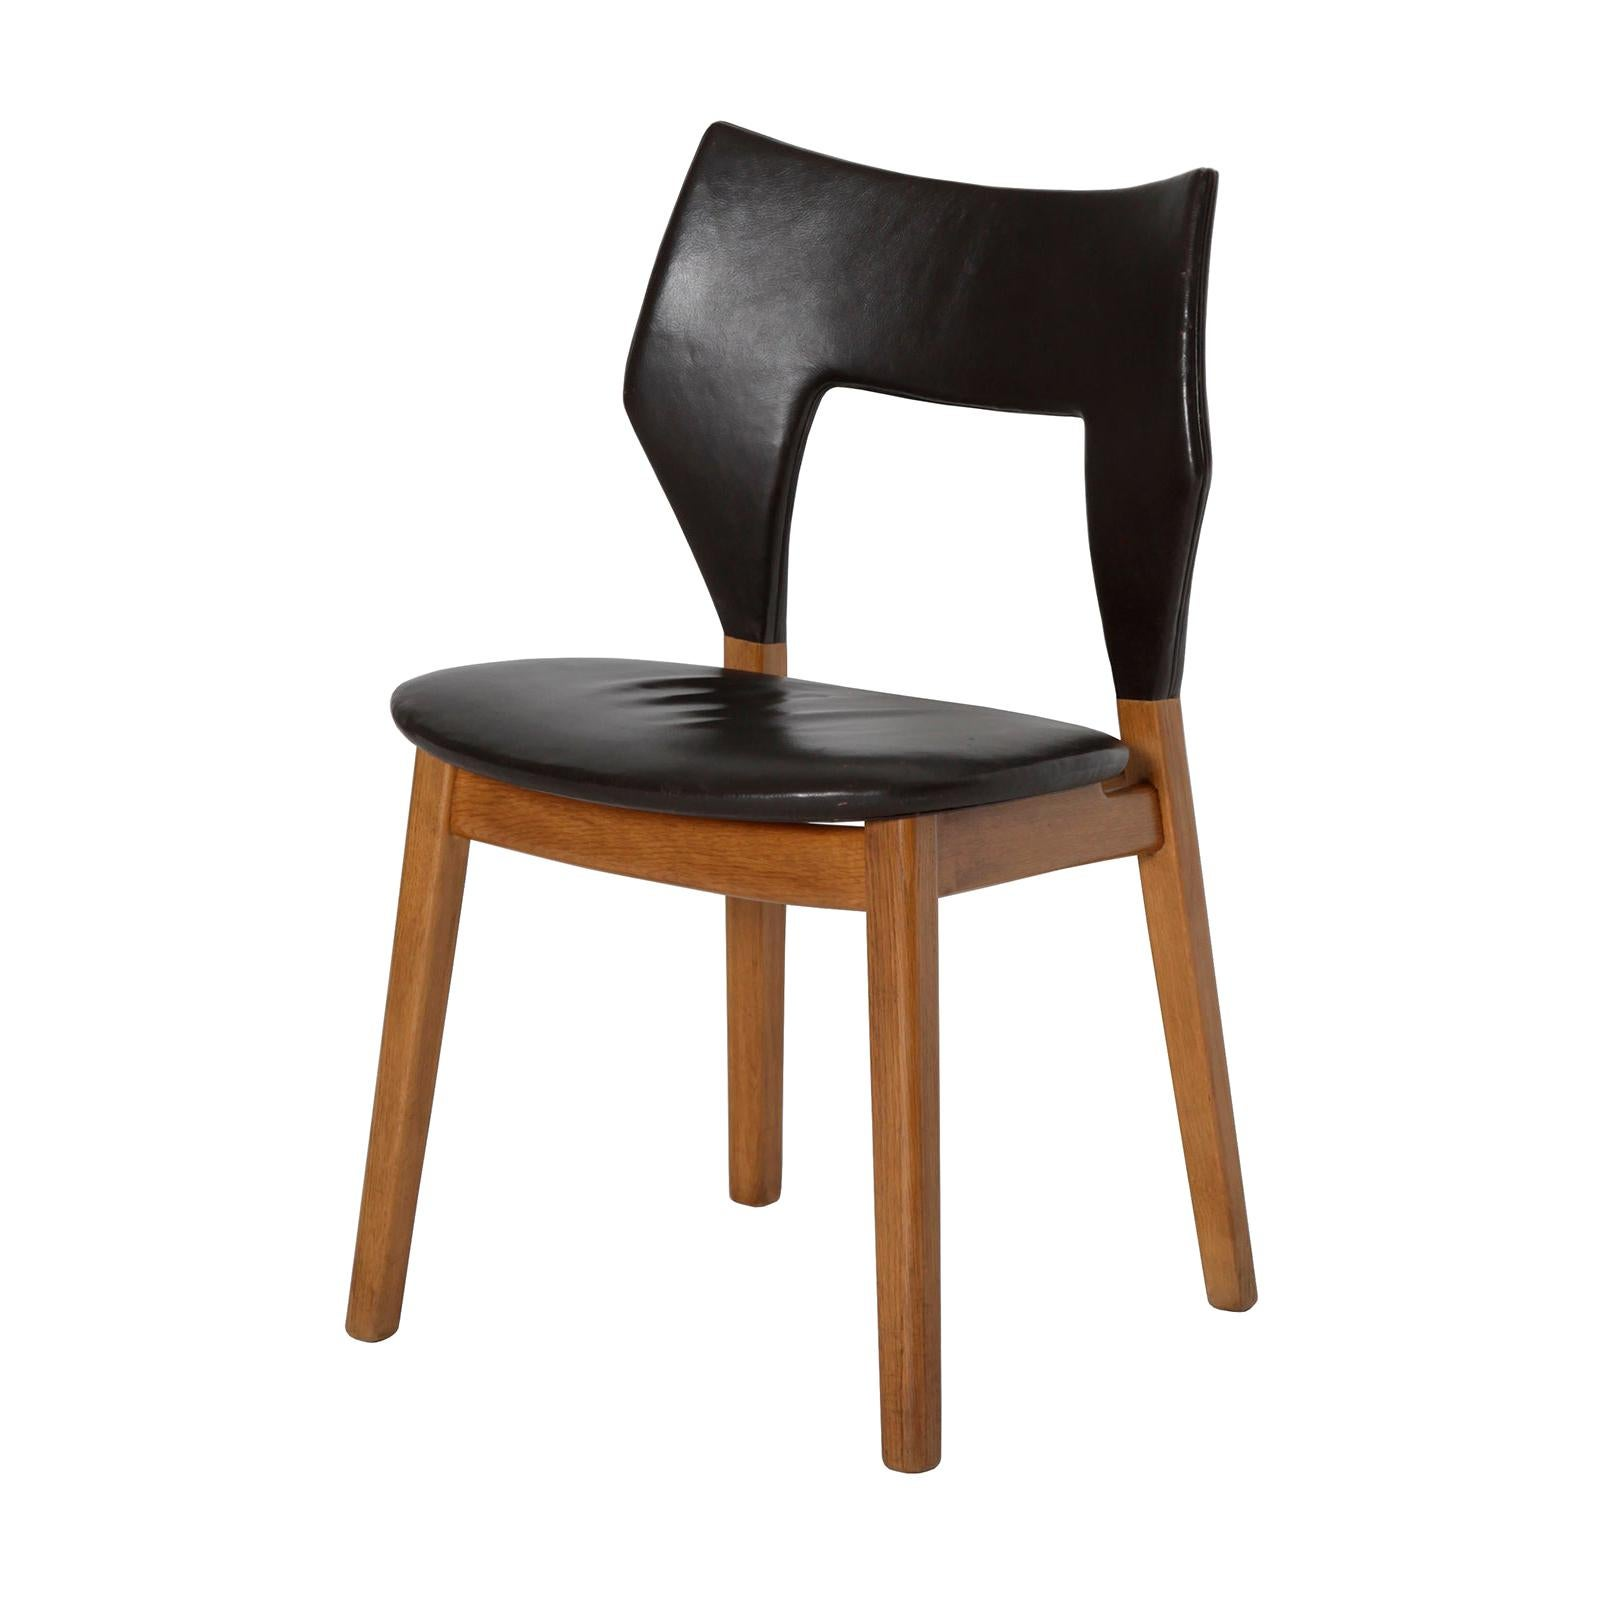 Danish Side Chair in Oak and Leather by Tove & Edvard Kindt-Larsen